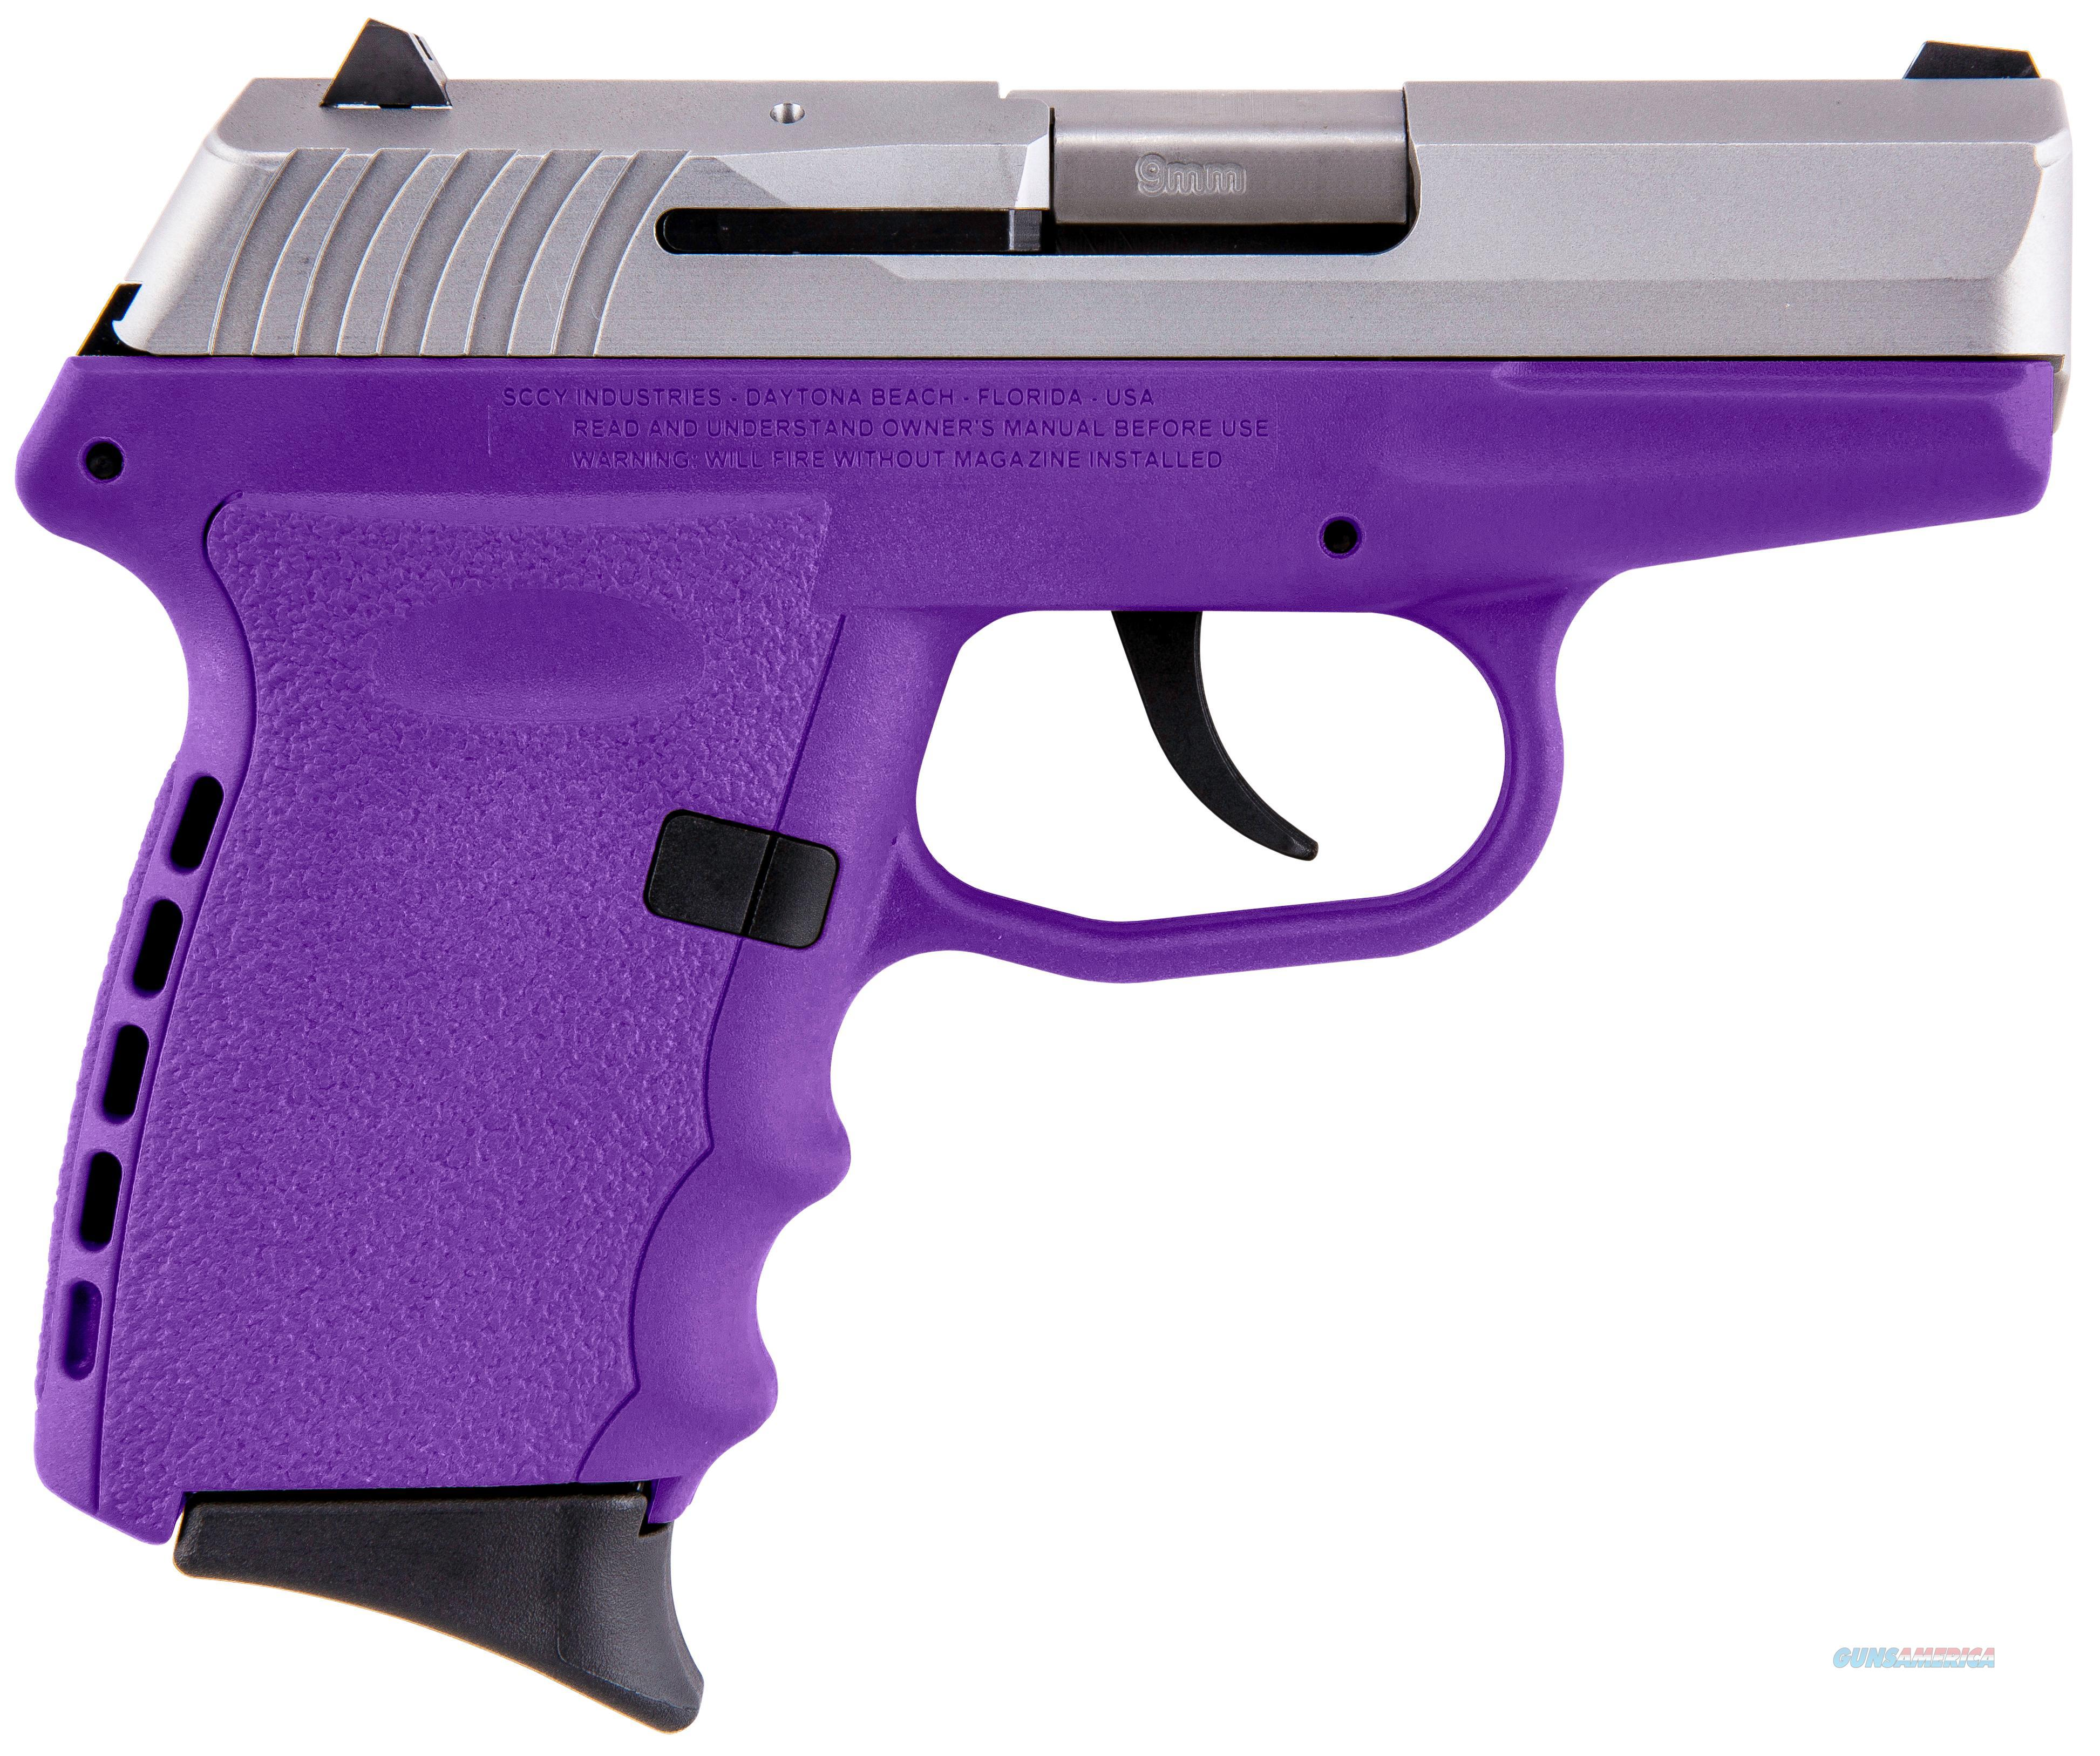 Sccy Industries Cpx-2 9Mm 3.1 10Rd Duo Tone Purple No Safet CPX2-TTPU  Guns > Pistols > S Misc Pistols